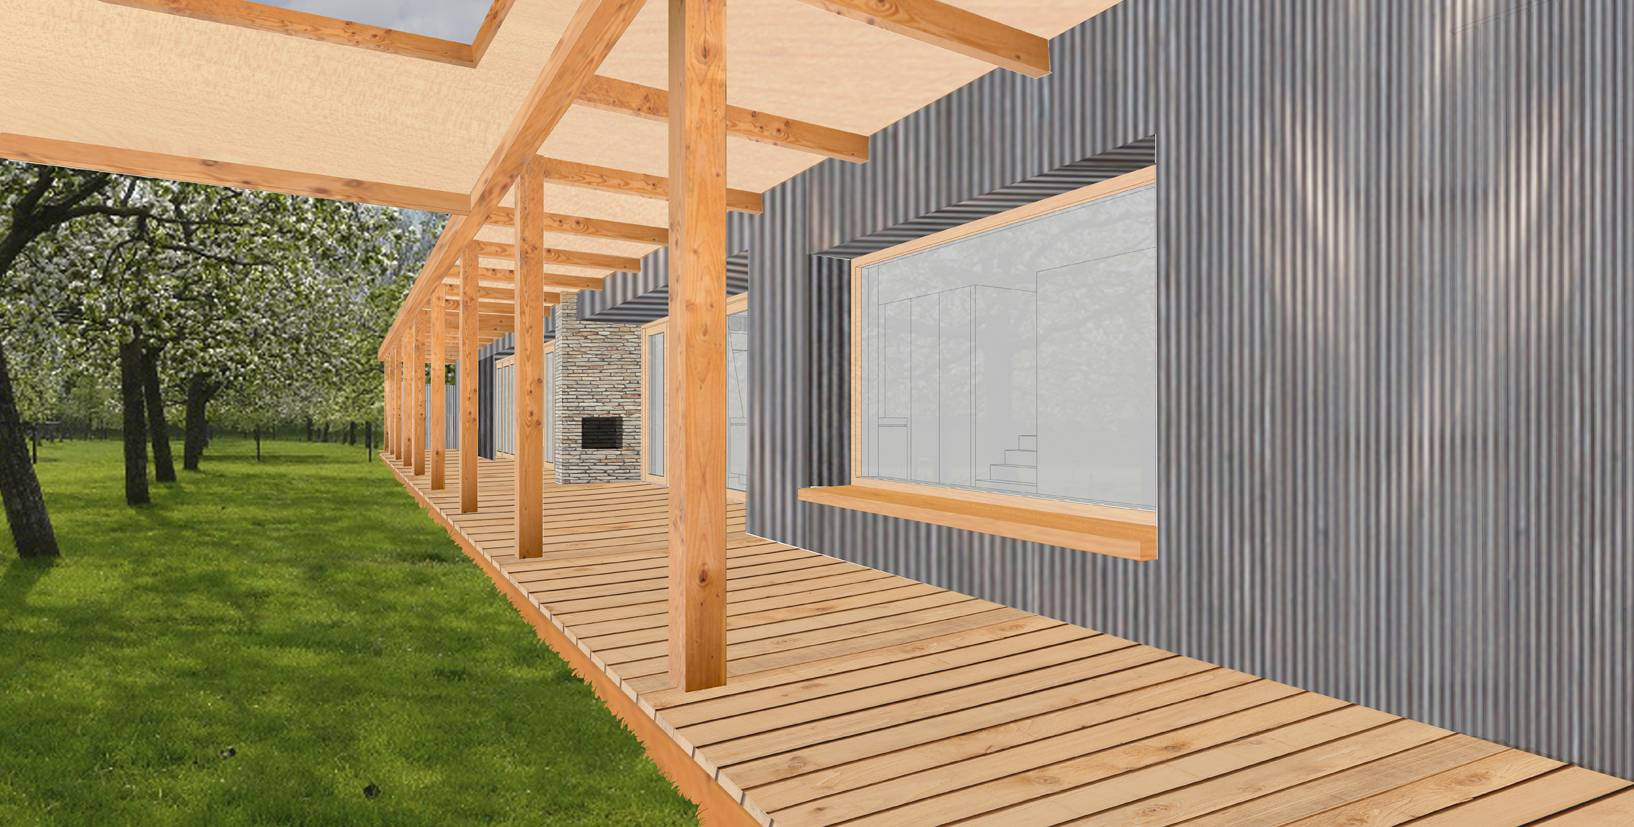 Element A_The Wooden House with Two Verandas_02